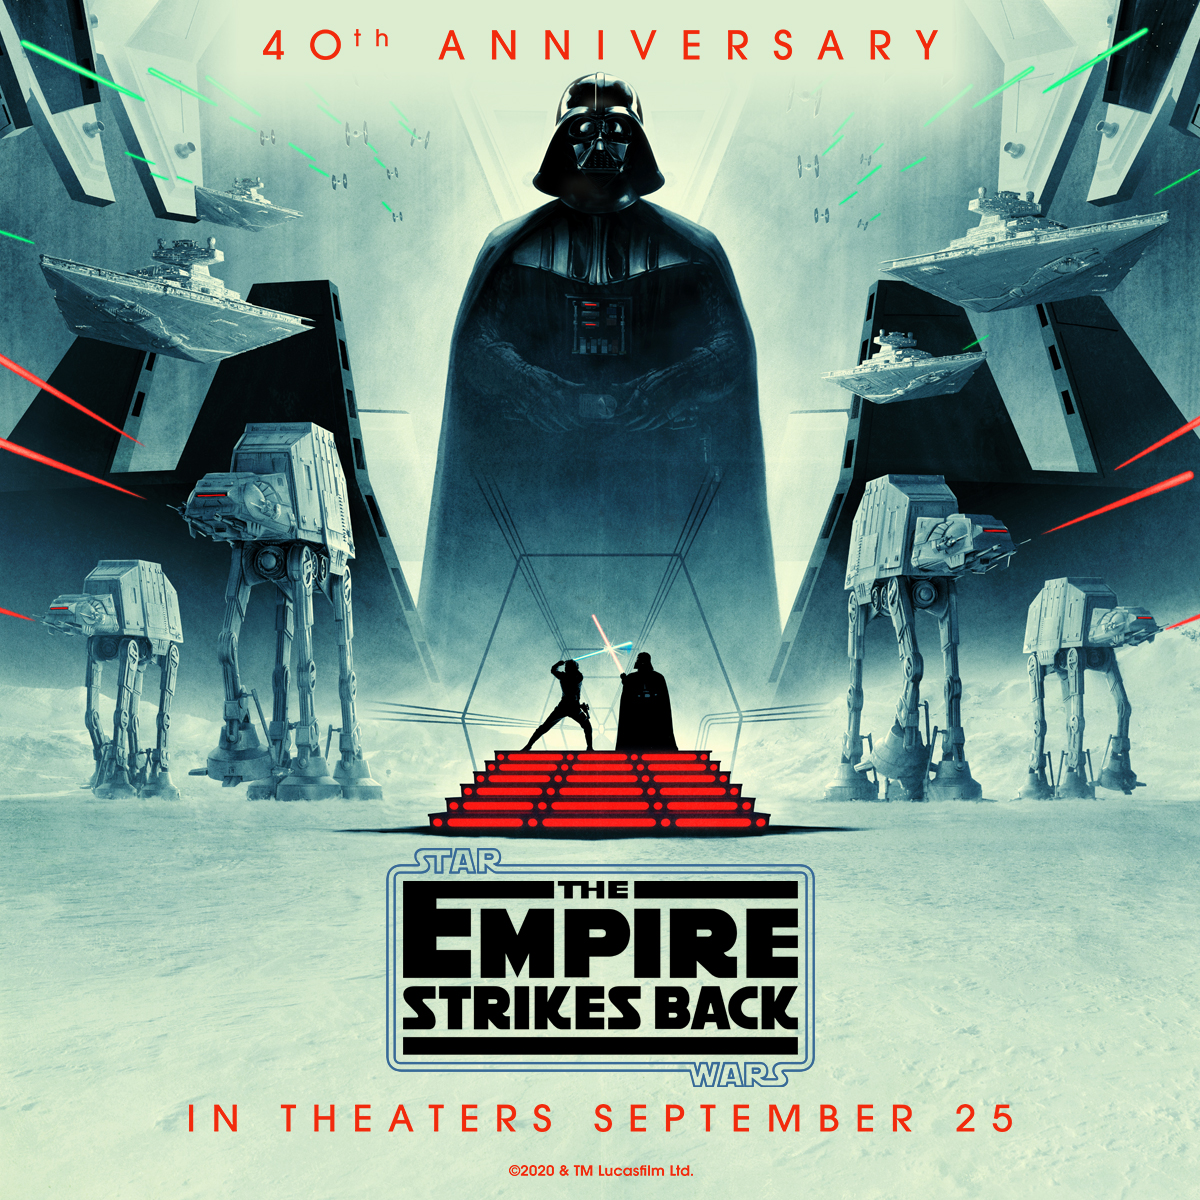 Celebrate the 40th anniversary of The Empire Strikes Back at https://t.co/9TNzgavfeD Cinemas 🎥🍿 In theatres Sept 25th!  Tickets on sale NOW! ⚠️   Buy tickets: https://t.co/0G73QbVjwj 🎟  COVID-19 Procedure: https://t.co/qFX96q1qf1 🏠   #theempirestrikesback #starwars #lucasfilm https://t.co/GAPX0EfD18